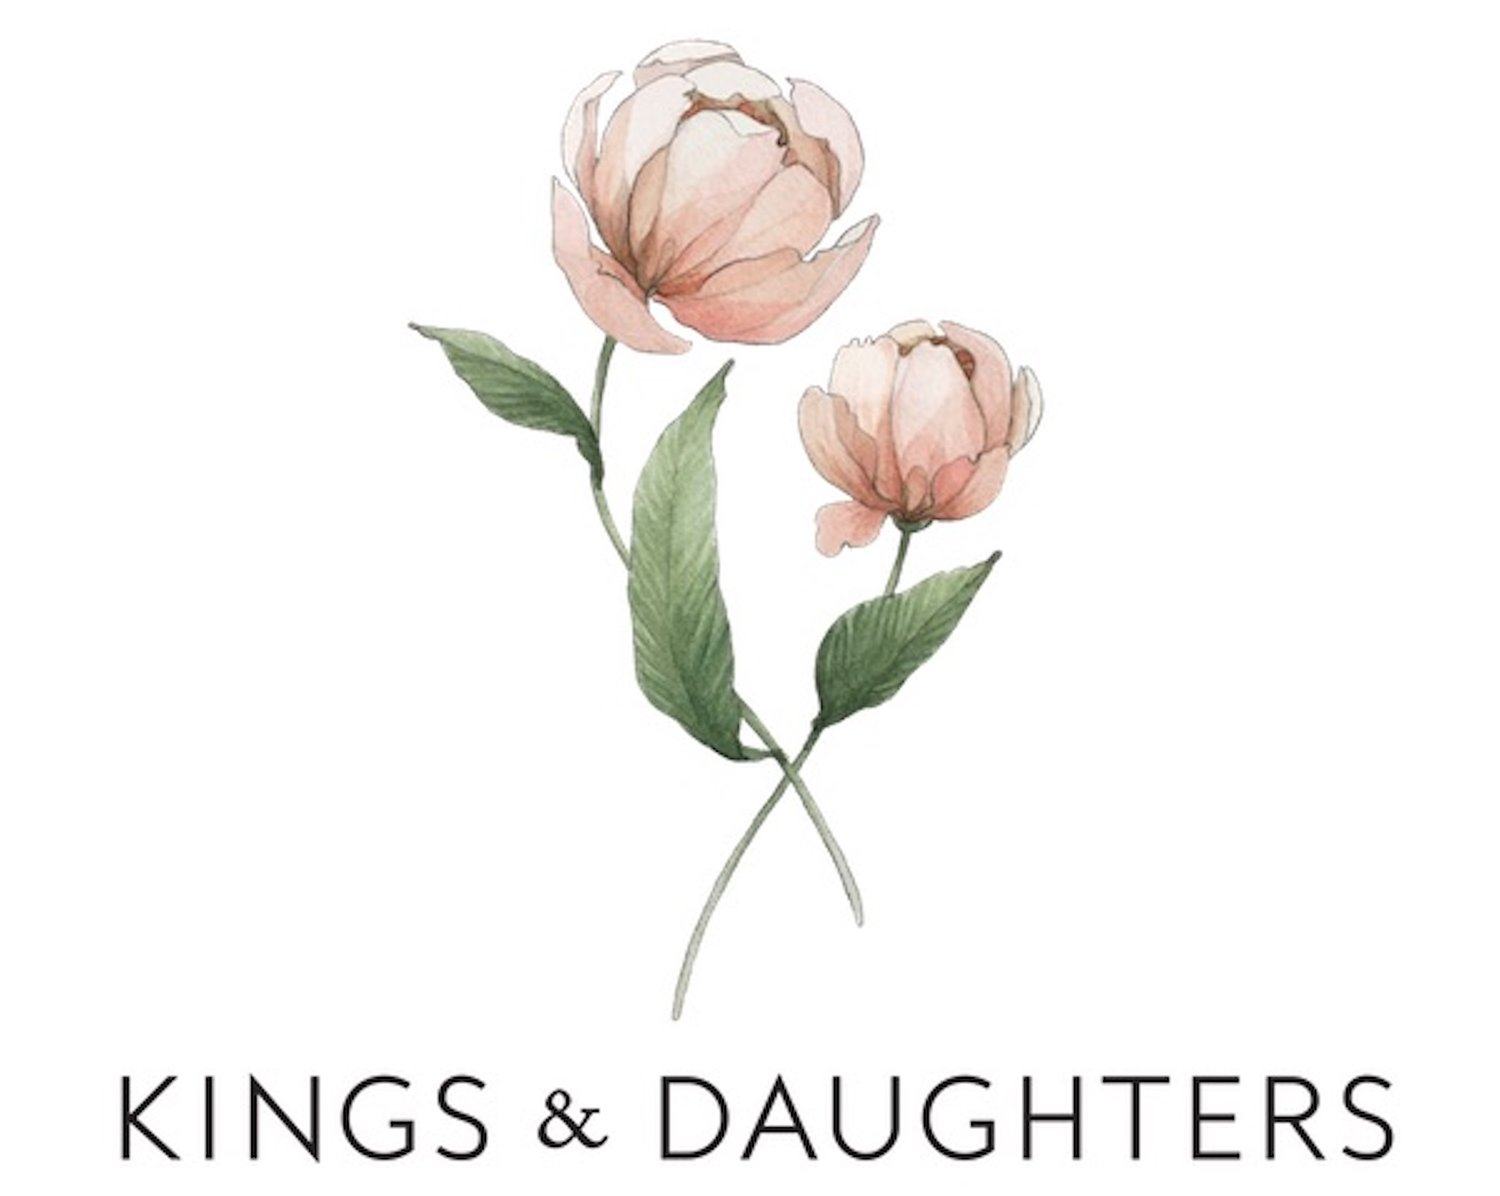 KINGS & DAUGHTERS